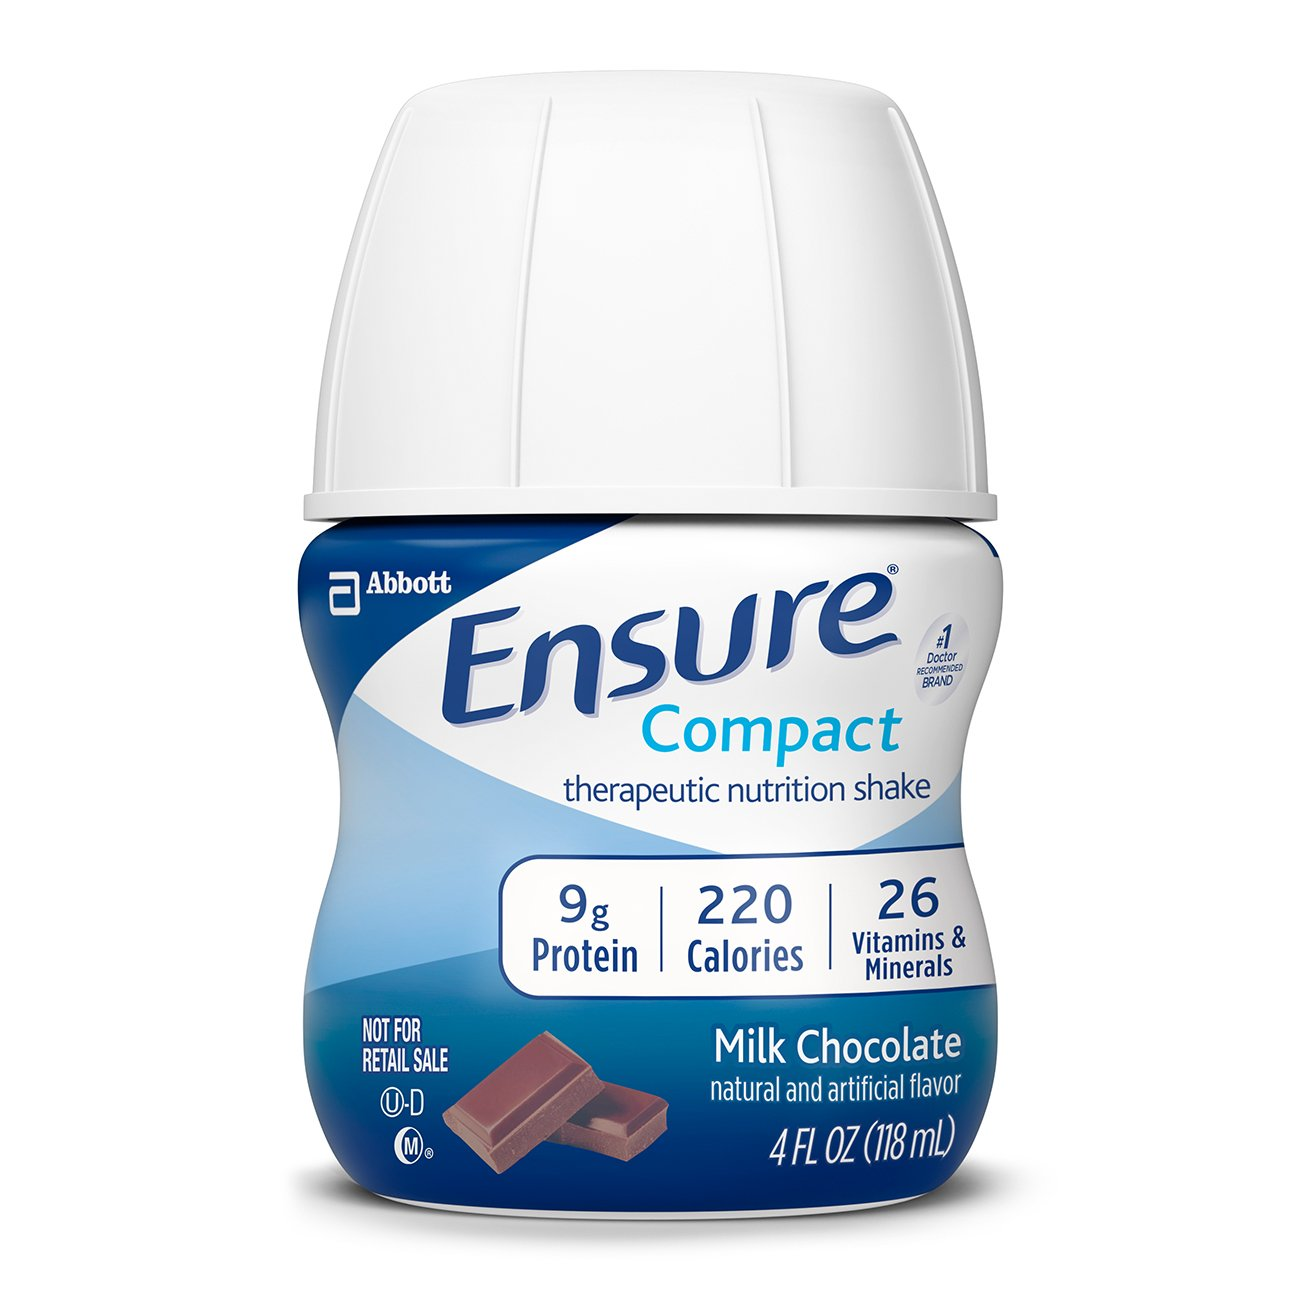 Ensure Compact Nutrition Shake, 9g of protein, Milk Chocolate, 4 fl oz, 24 Count